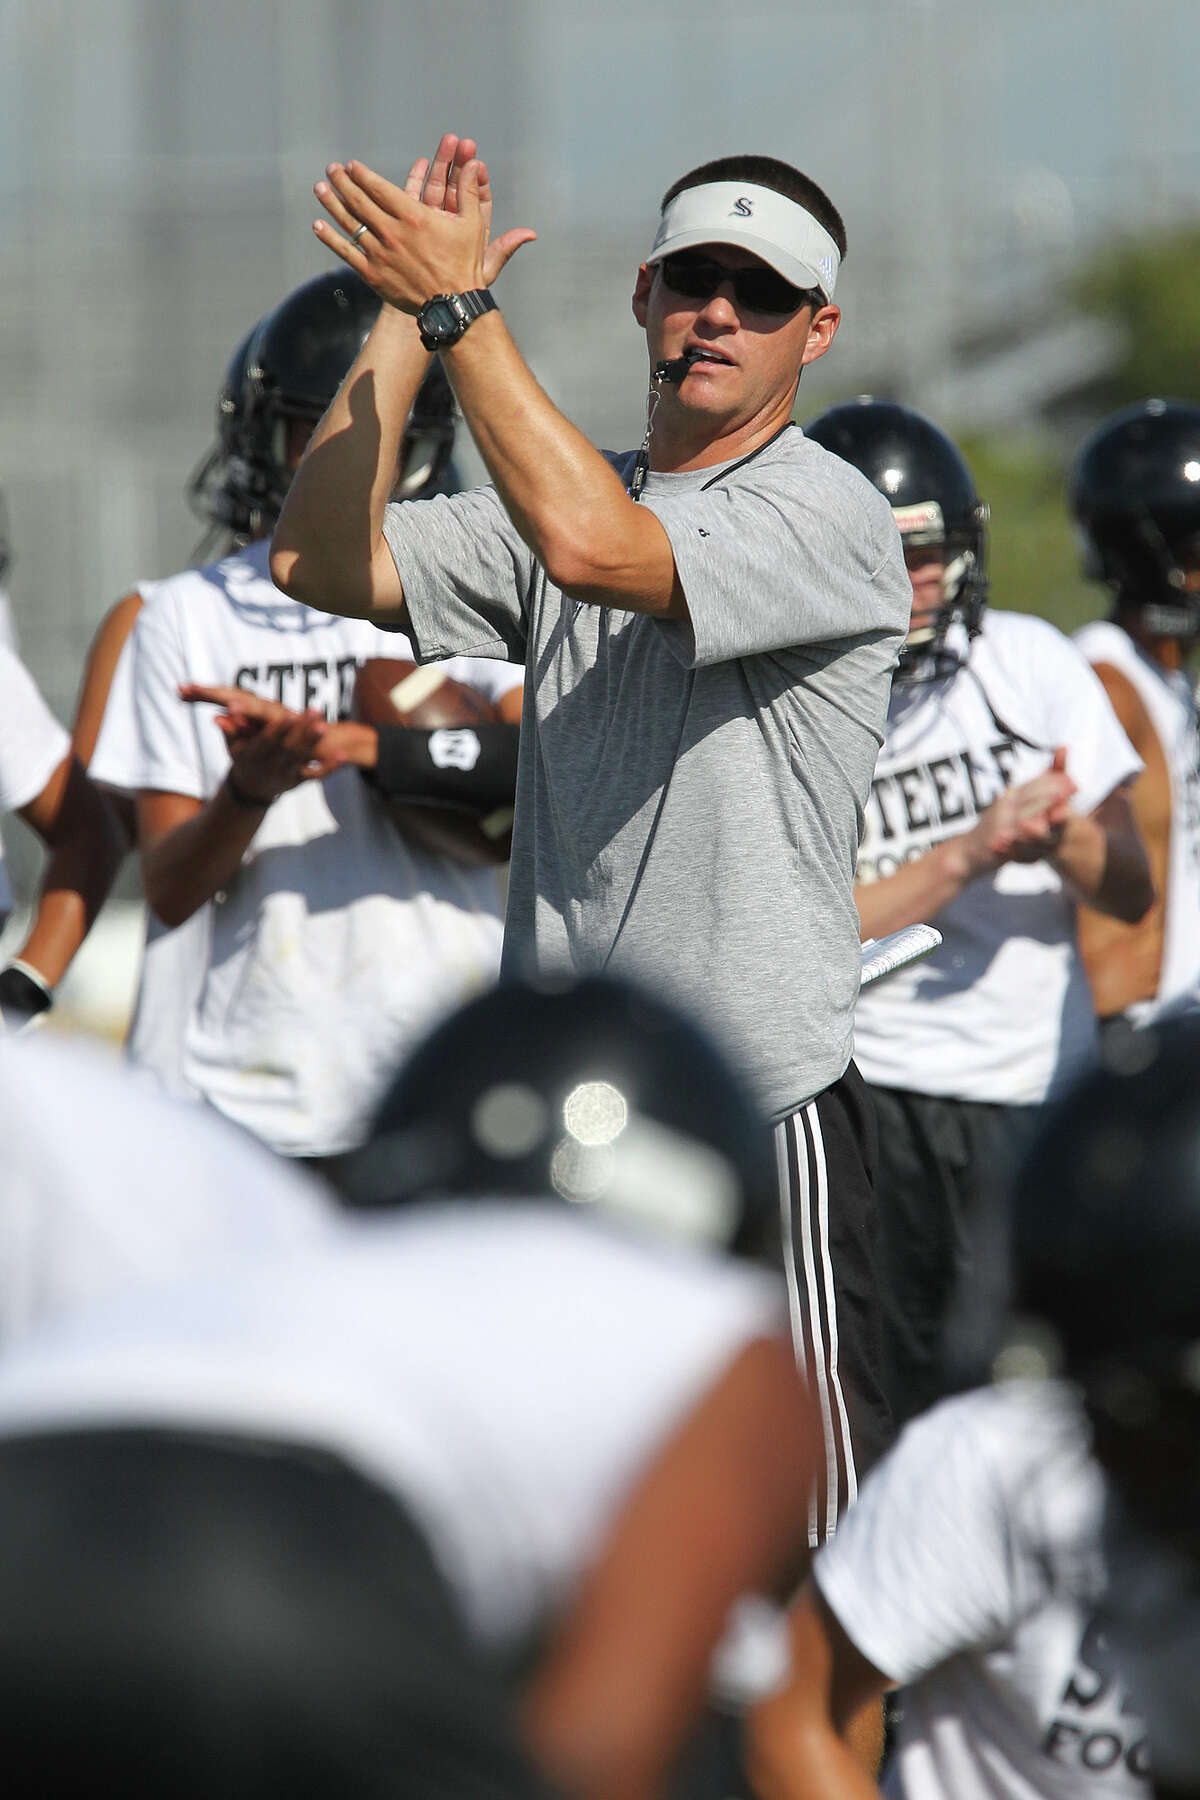 Steele High School Head Football Coach Scott Lehnhoff goes through the team's first practice of the season, Monday, Aug. 12, 2013. Lehnhoff took over the team after Mike Jinks left for Texas Tech University. The Knights have a 43-4 record in the past three years.